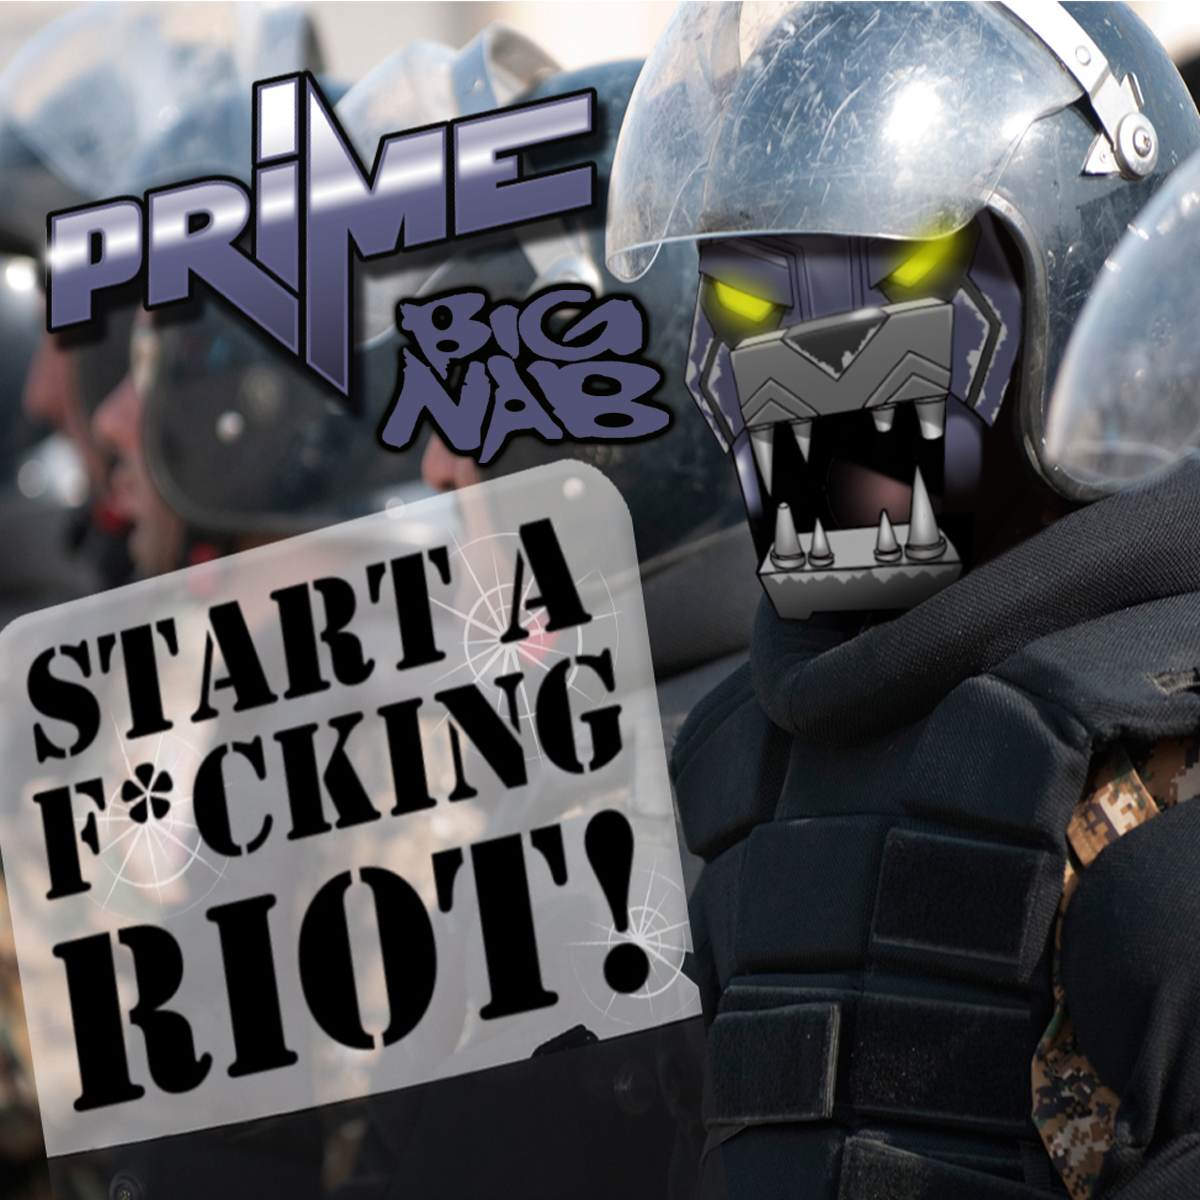 DJ Prime feat. Big Nab – Start A Fucking Riot